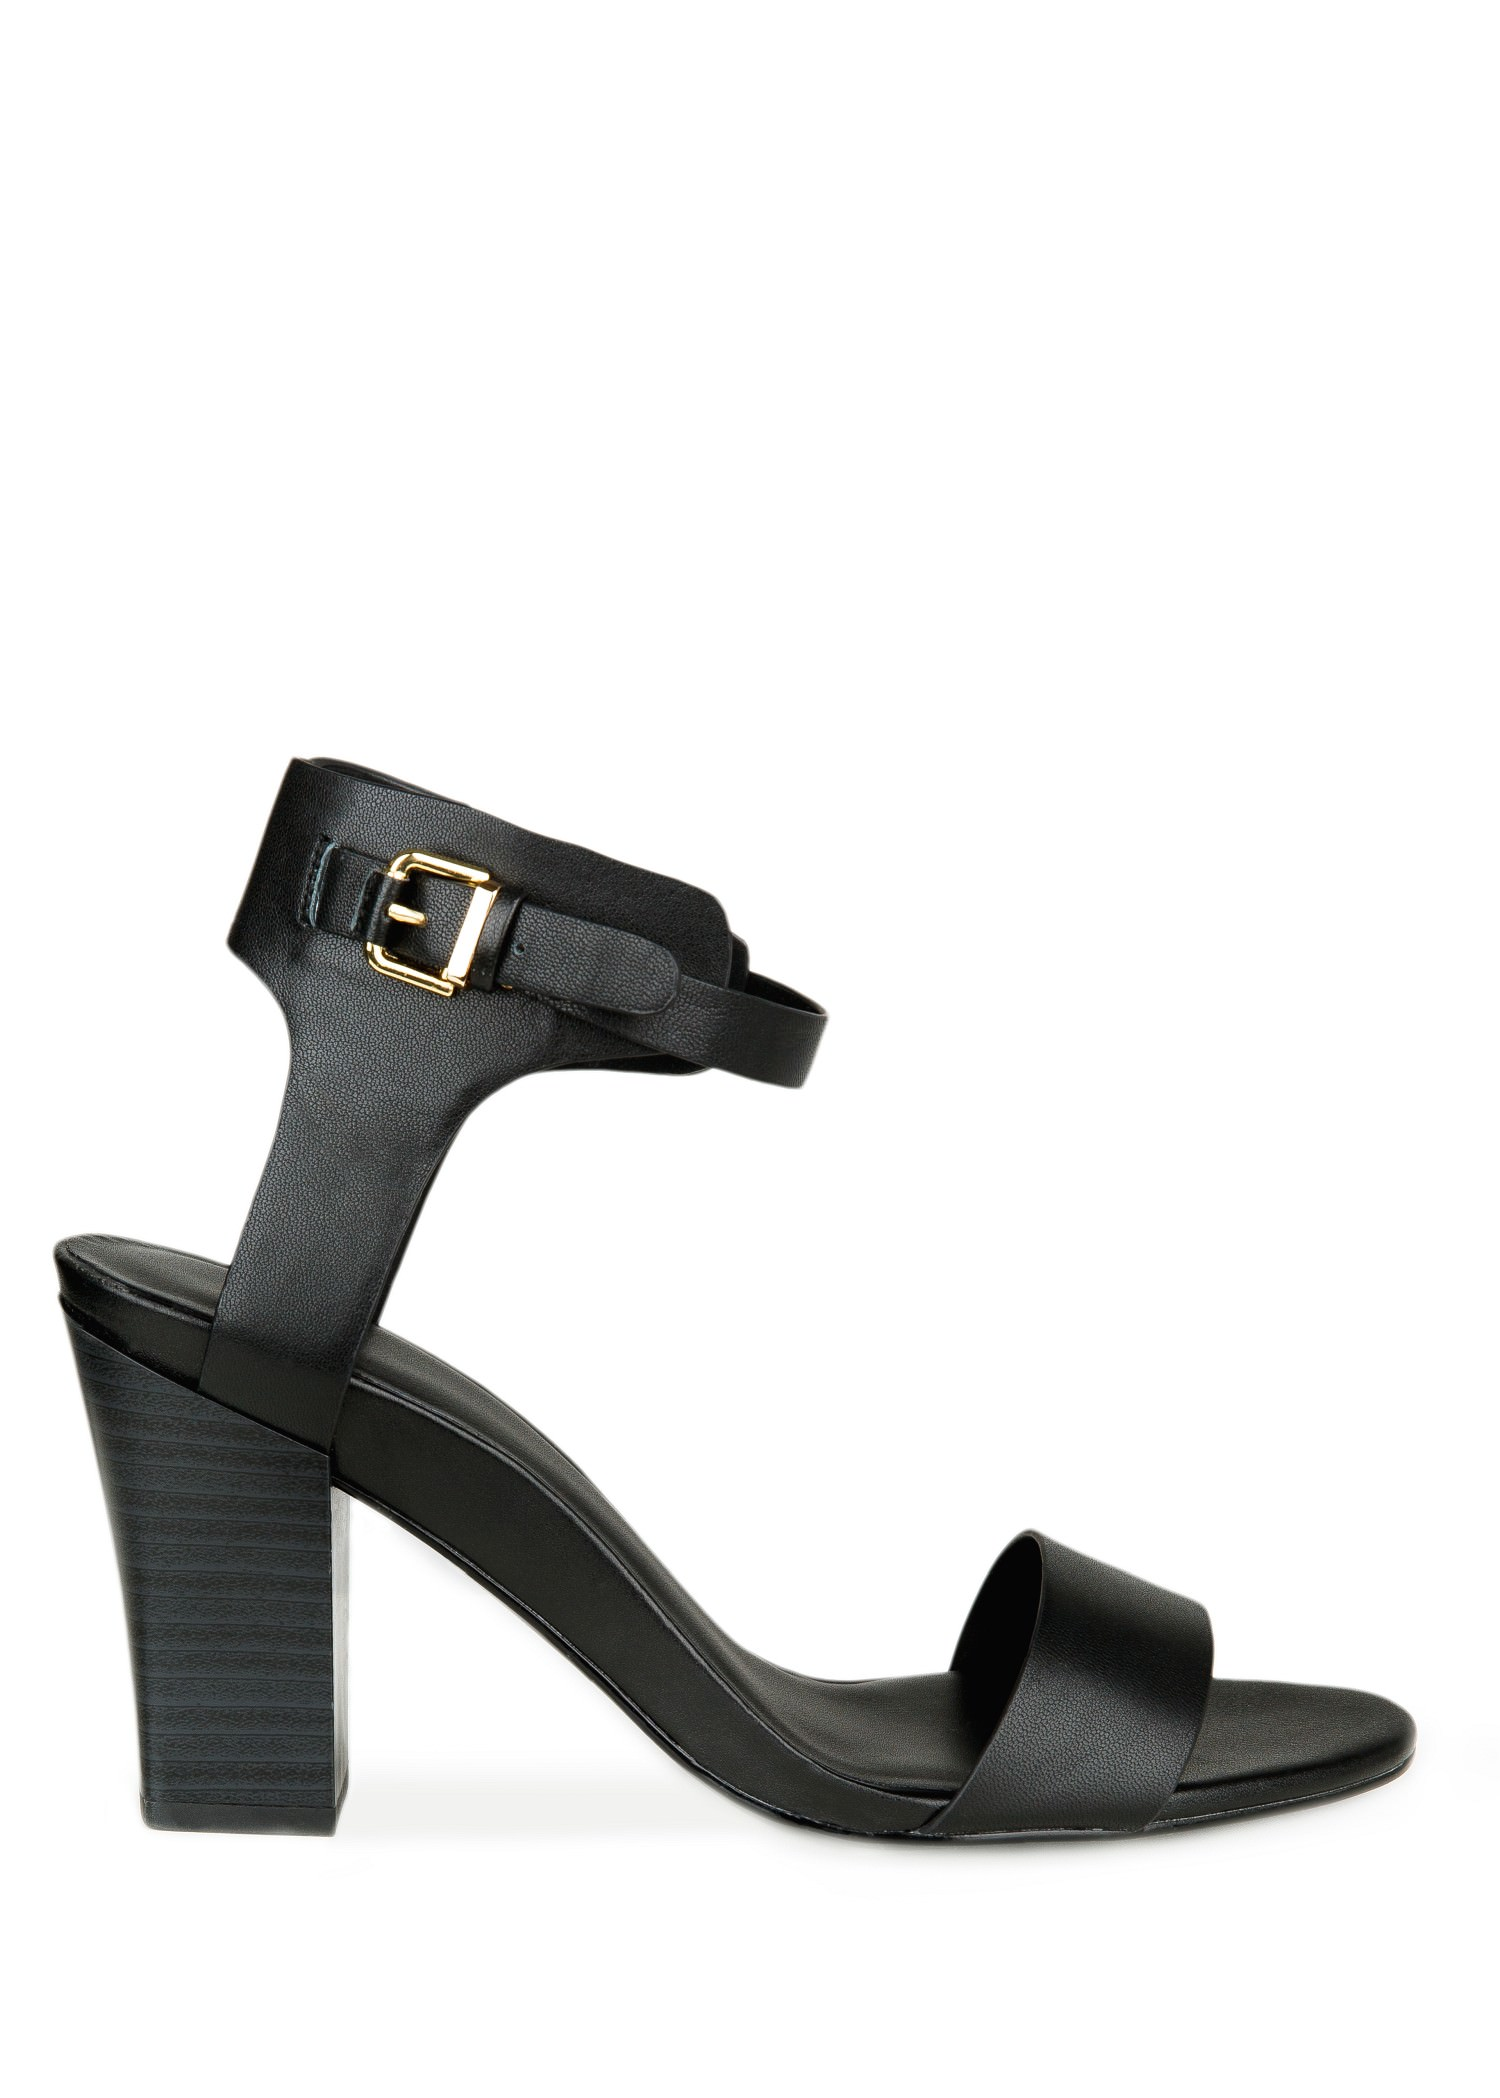 Ankle-cuff leather sandals - Shoes for Women | MANGO